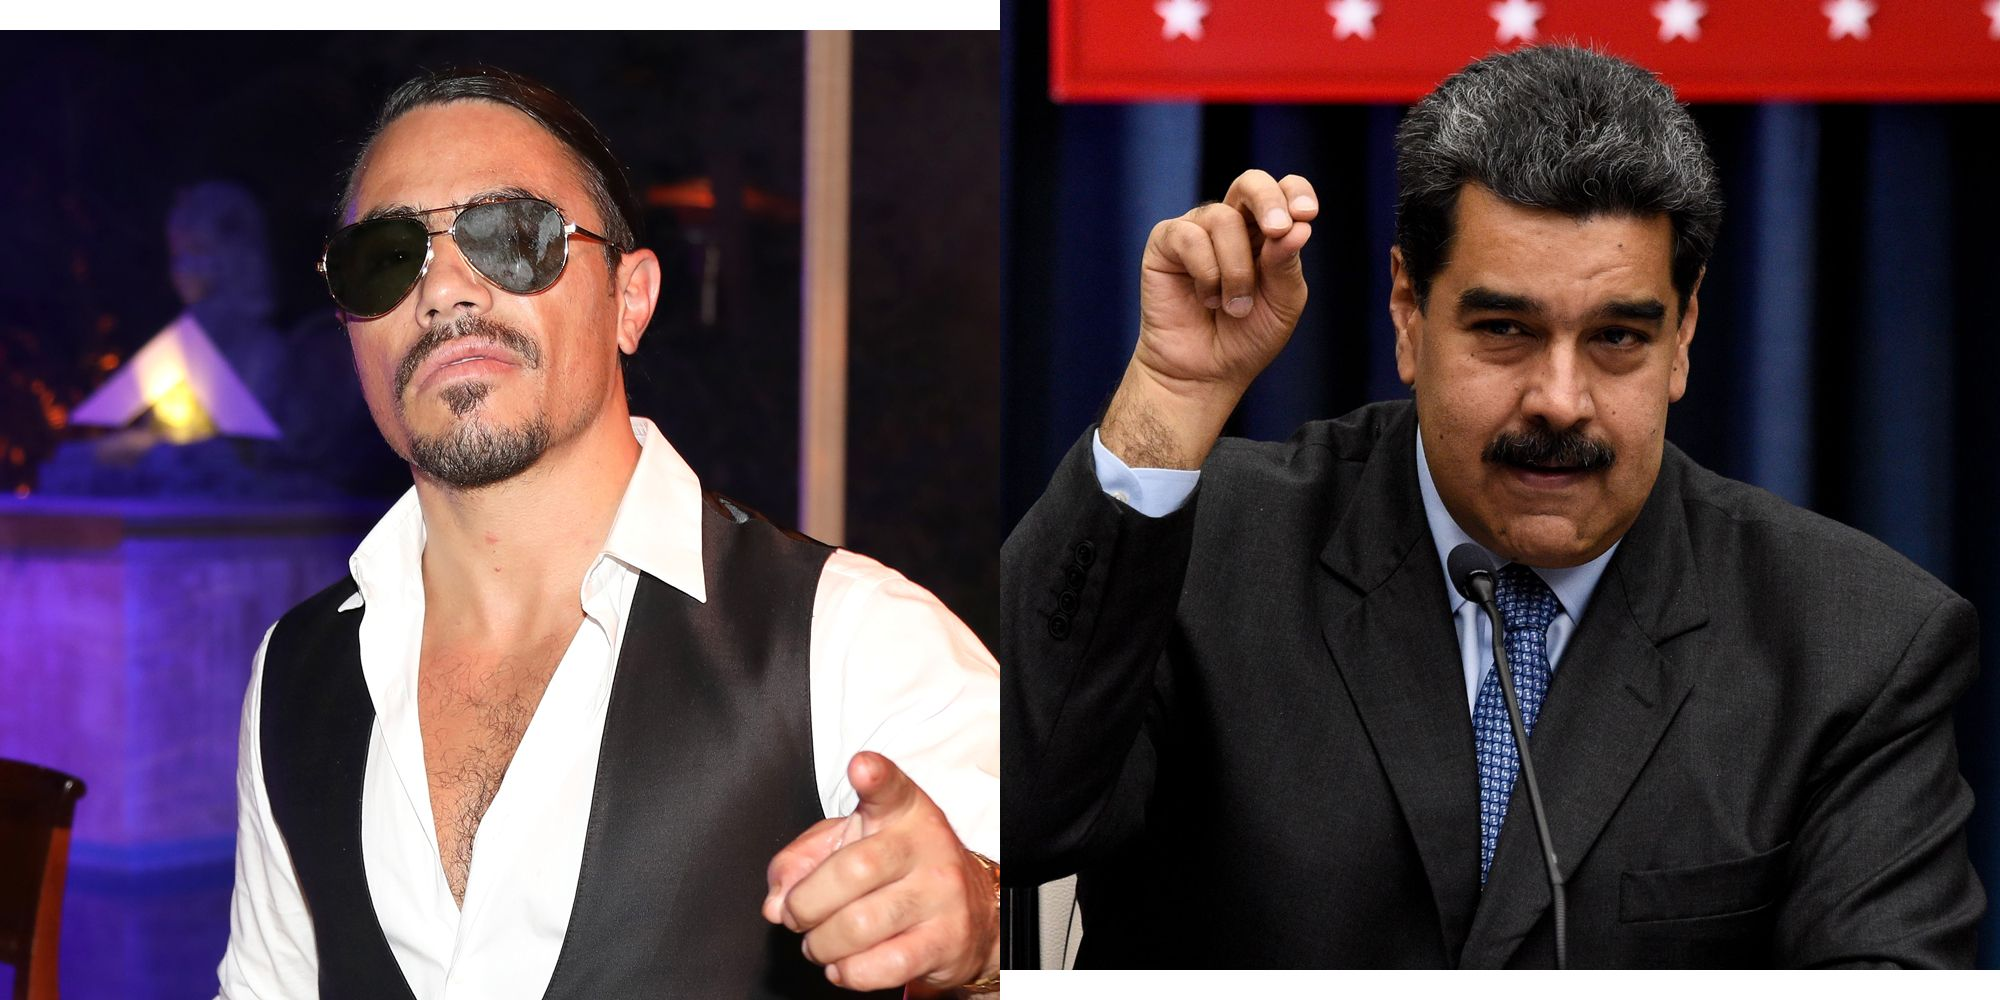 Salt Bae Hosted a Feast for Venezuelan President Nicolás Maduro, and People Are Rightfully Pissed